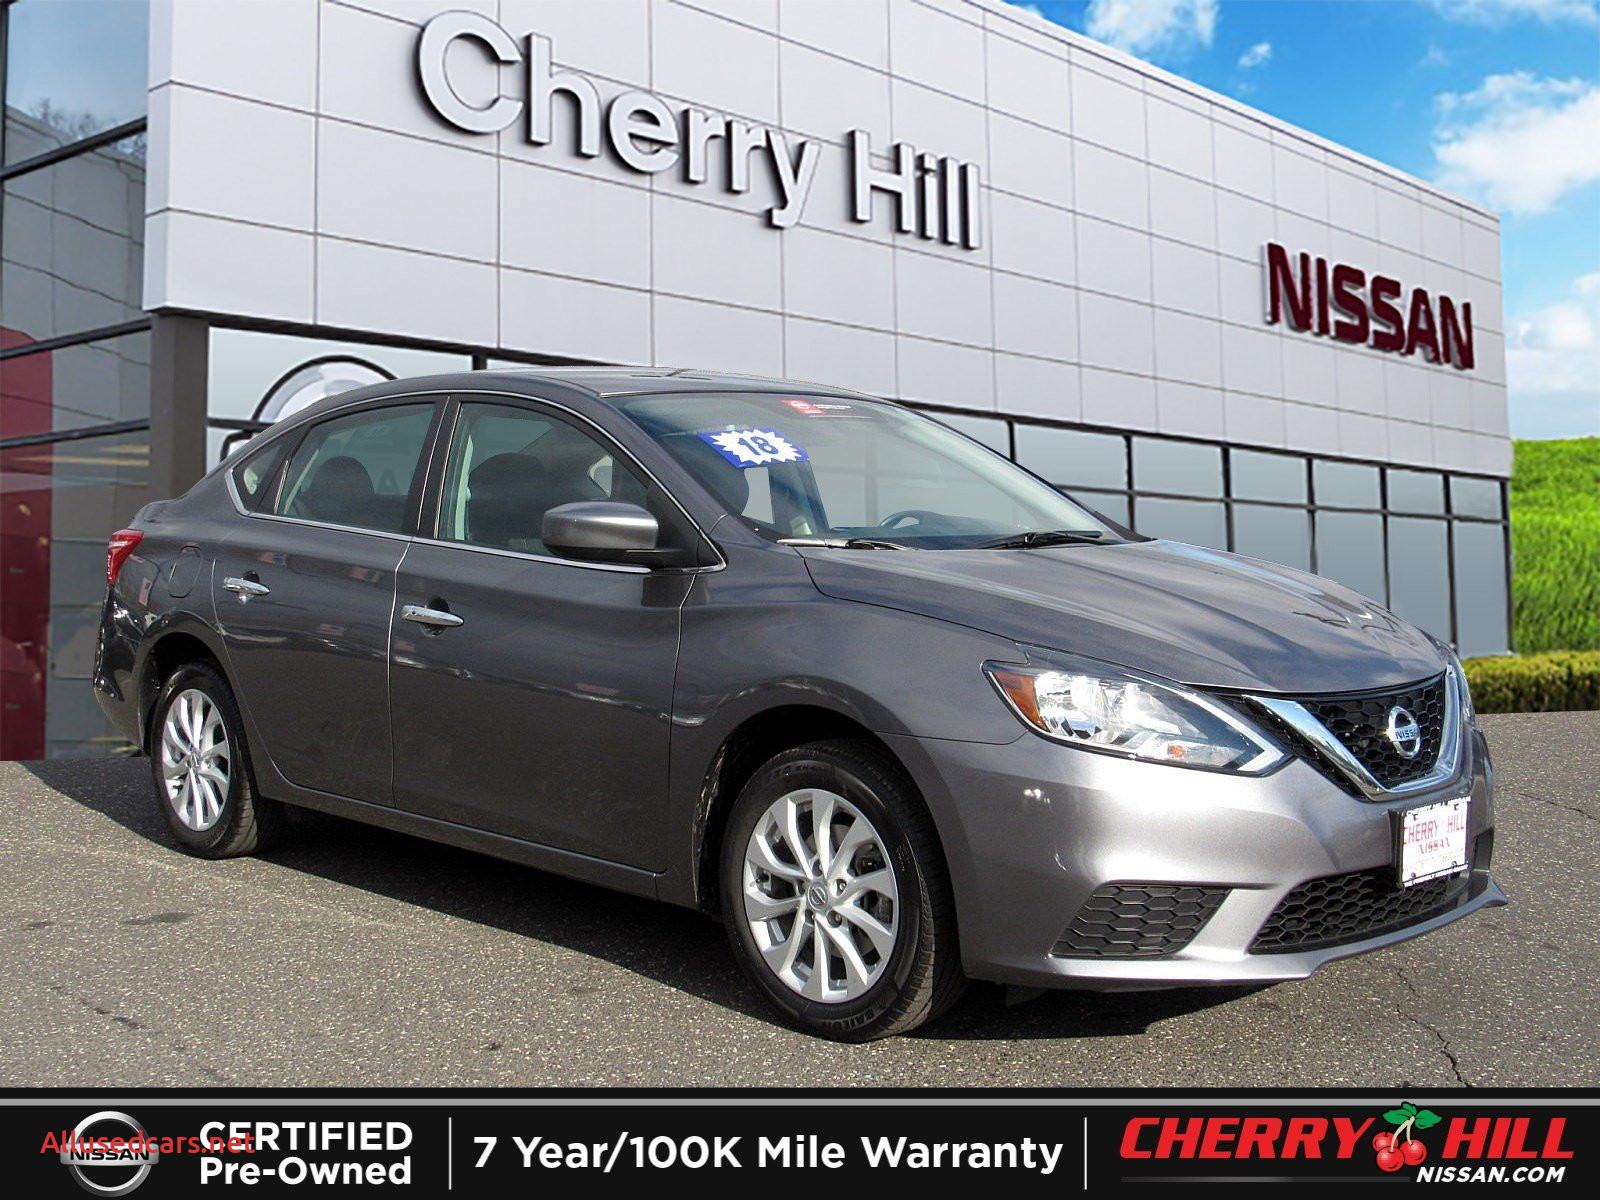 Nissan Sentra for Sale Inspirational 2018 Nissan Sentra Cherry Hill Nj